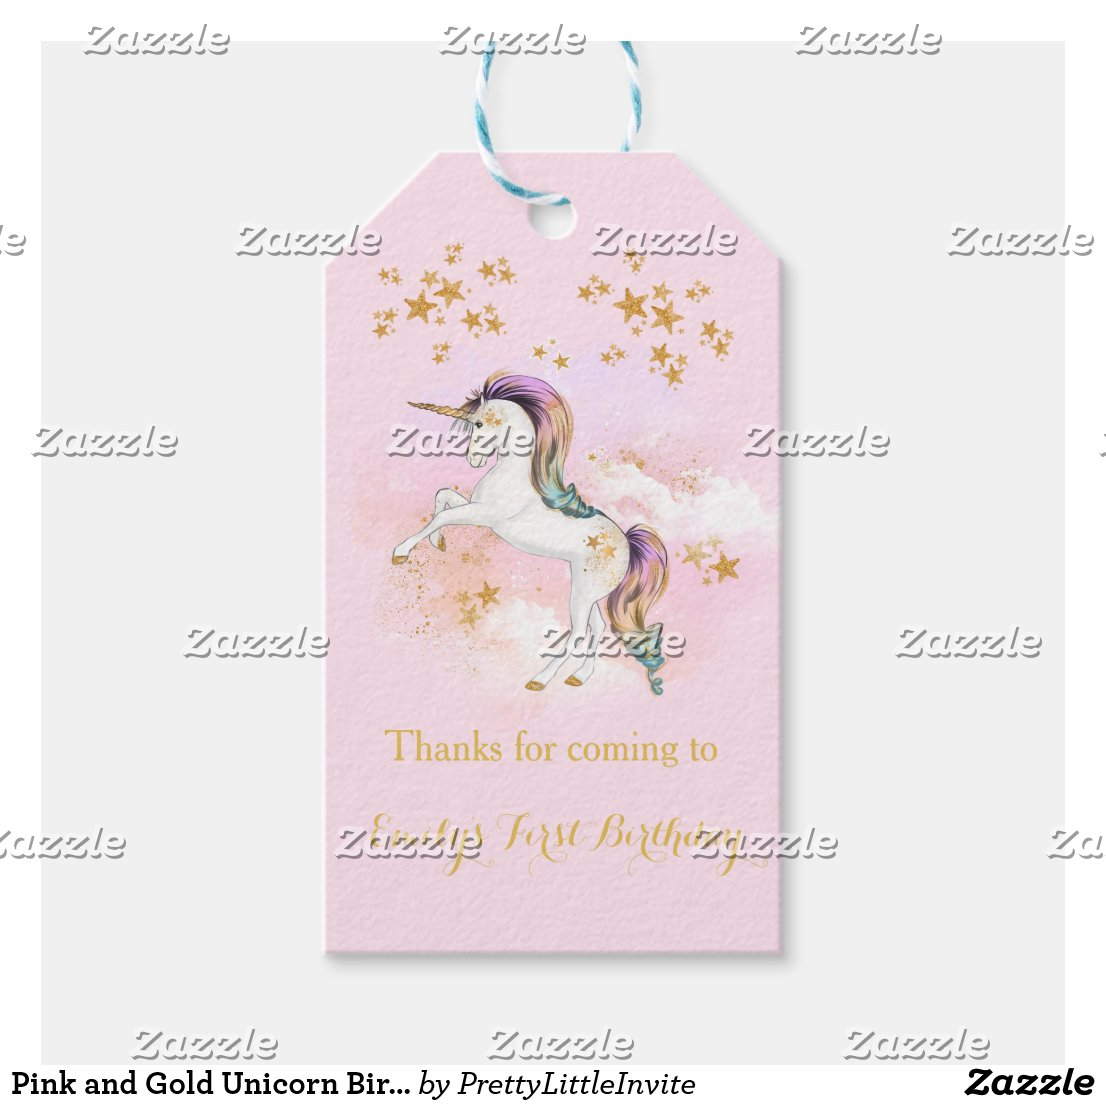 Pink and Gold Unicorn Birthday Party Favour Tags